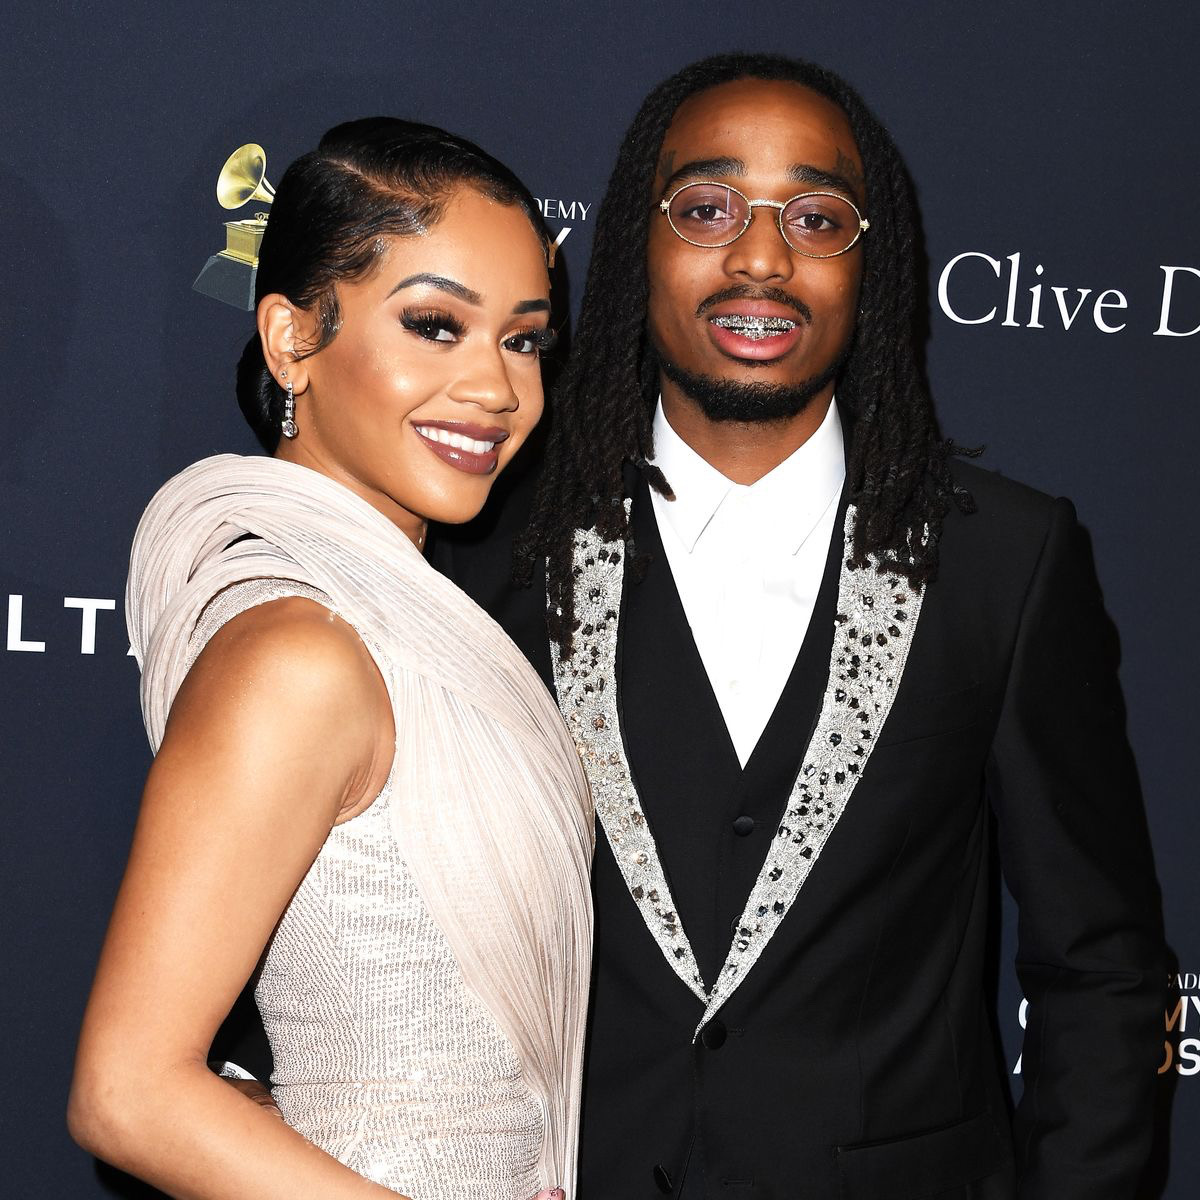 quavo-saweetie-bentley-burna-boy-diddy-luis-suarez-500th-goal-latest-news-global-world-stories-monday-march-2021-style-rave